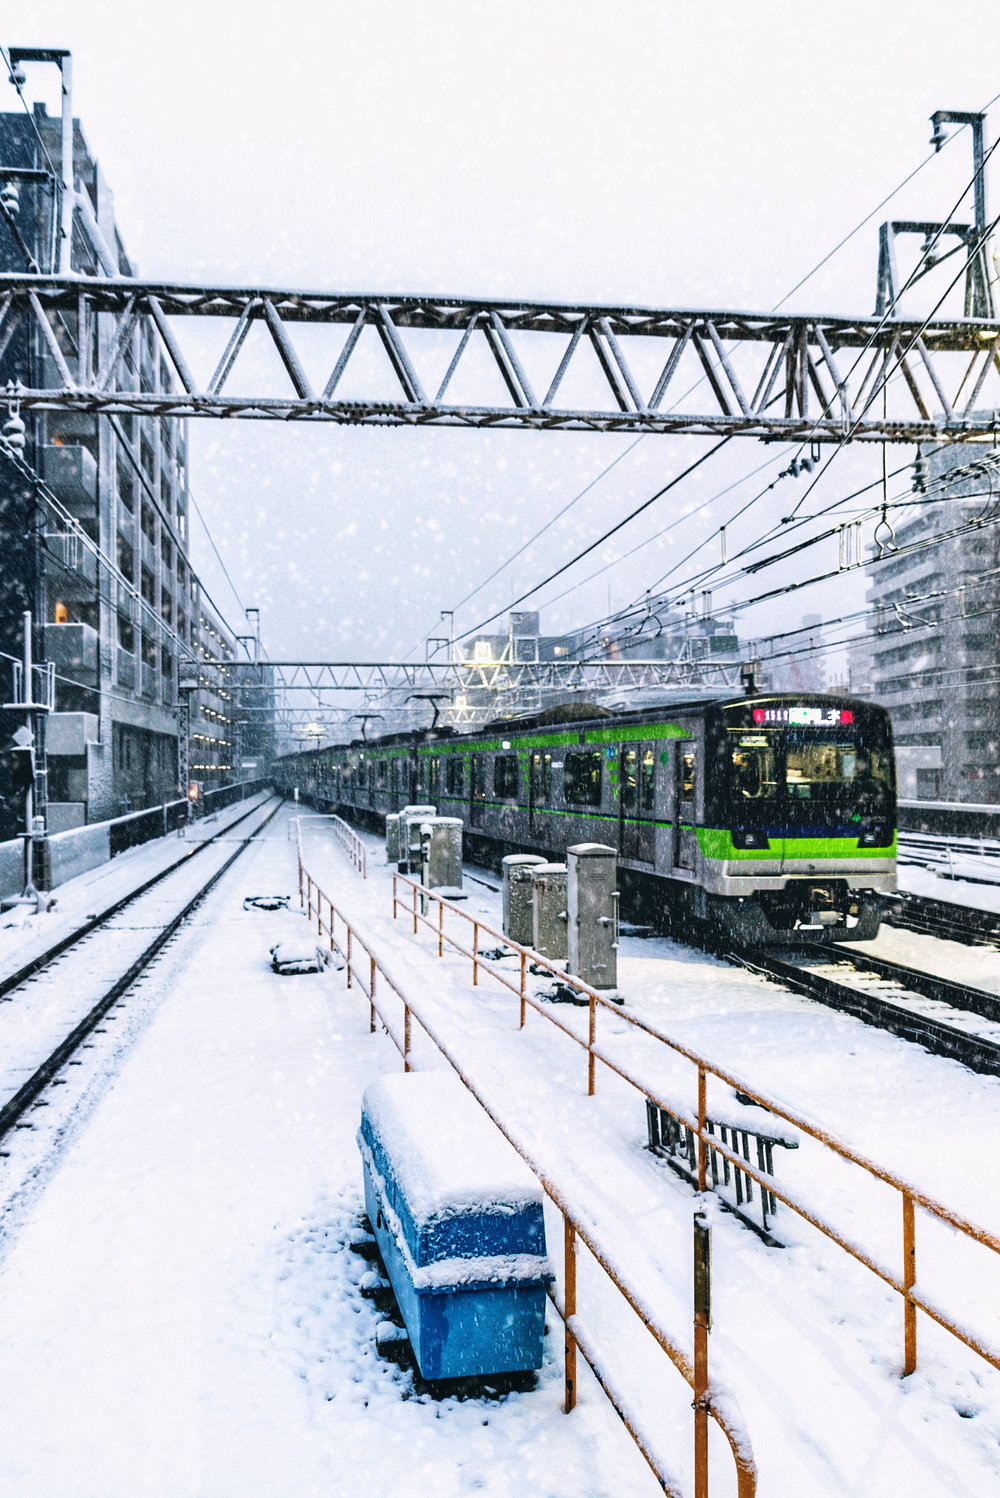 A Keio line train departs Sasazuka station bound for Hashimoto.